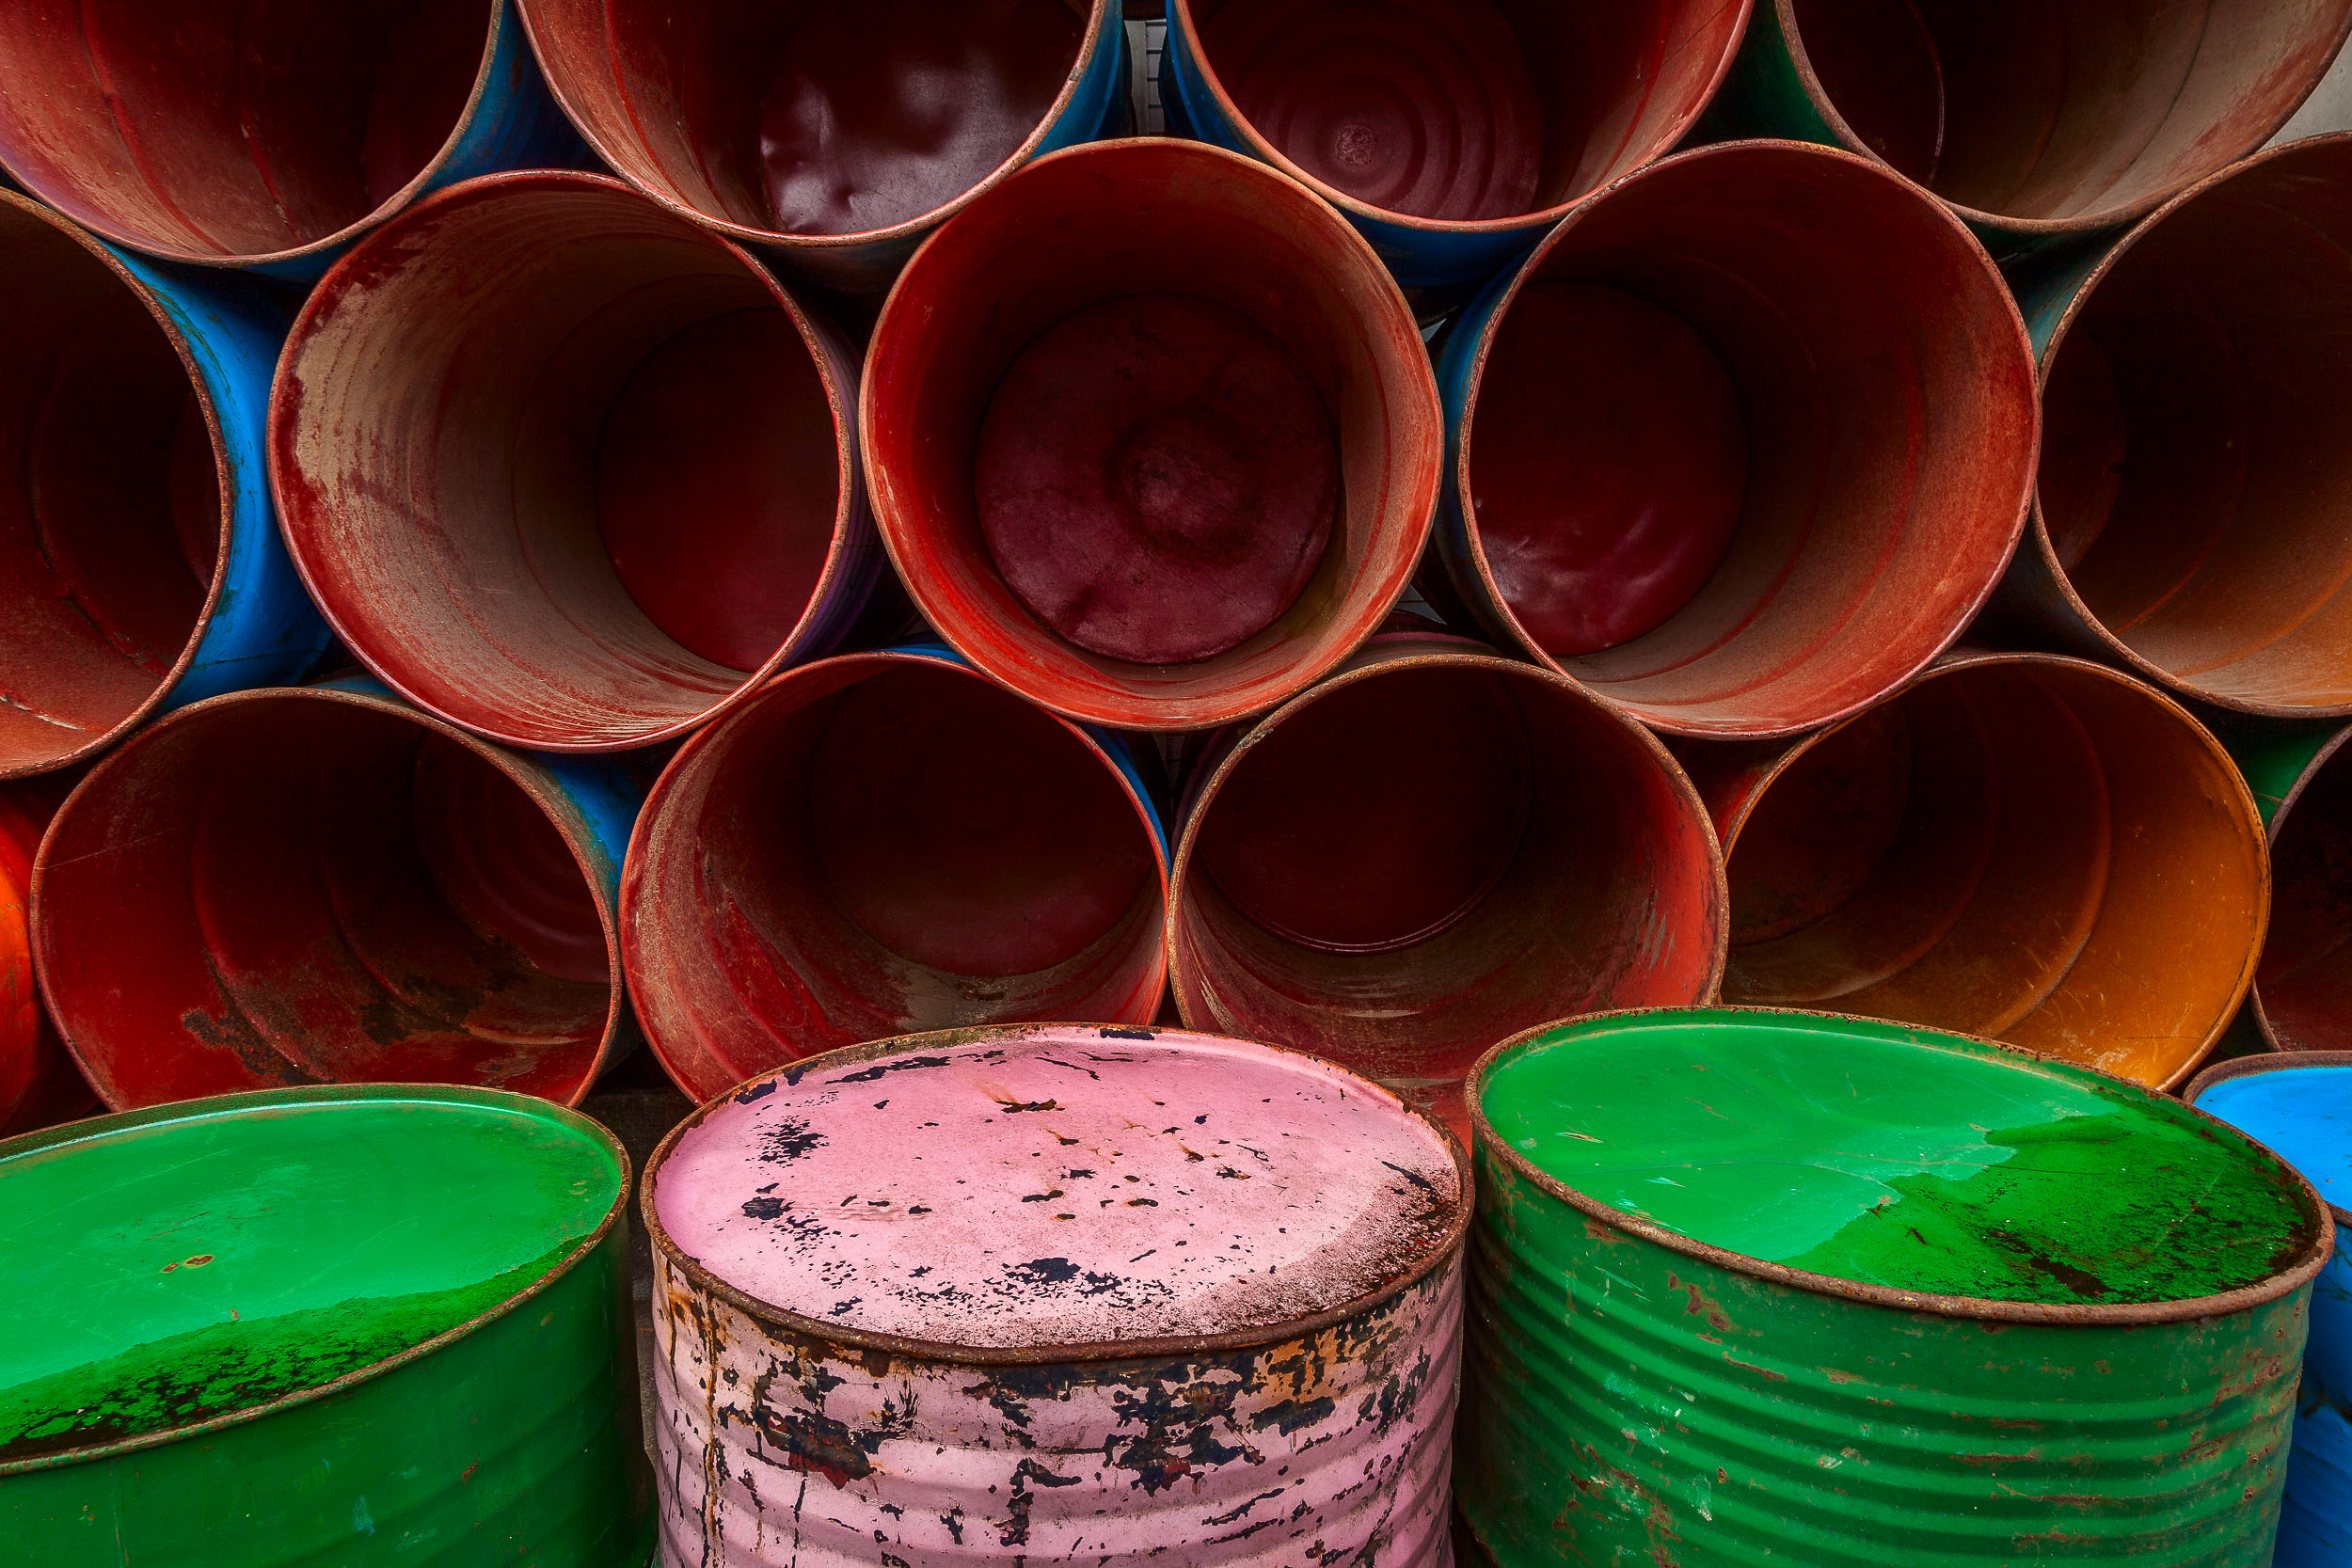 An arrangement of colorful barrels , stacked by the side of the road in Ubud, Bali make for a vivid, symmetrical and well balanced composition.